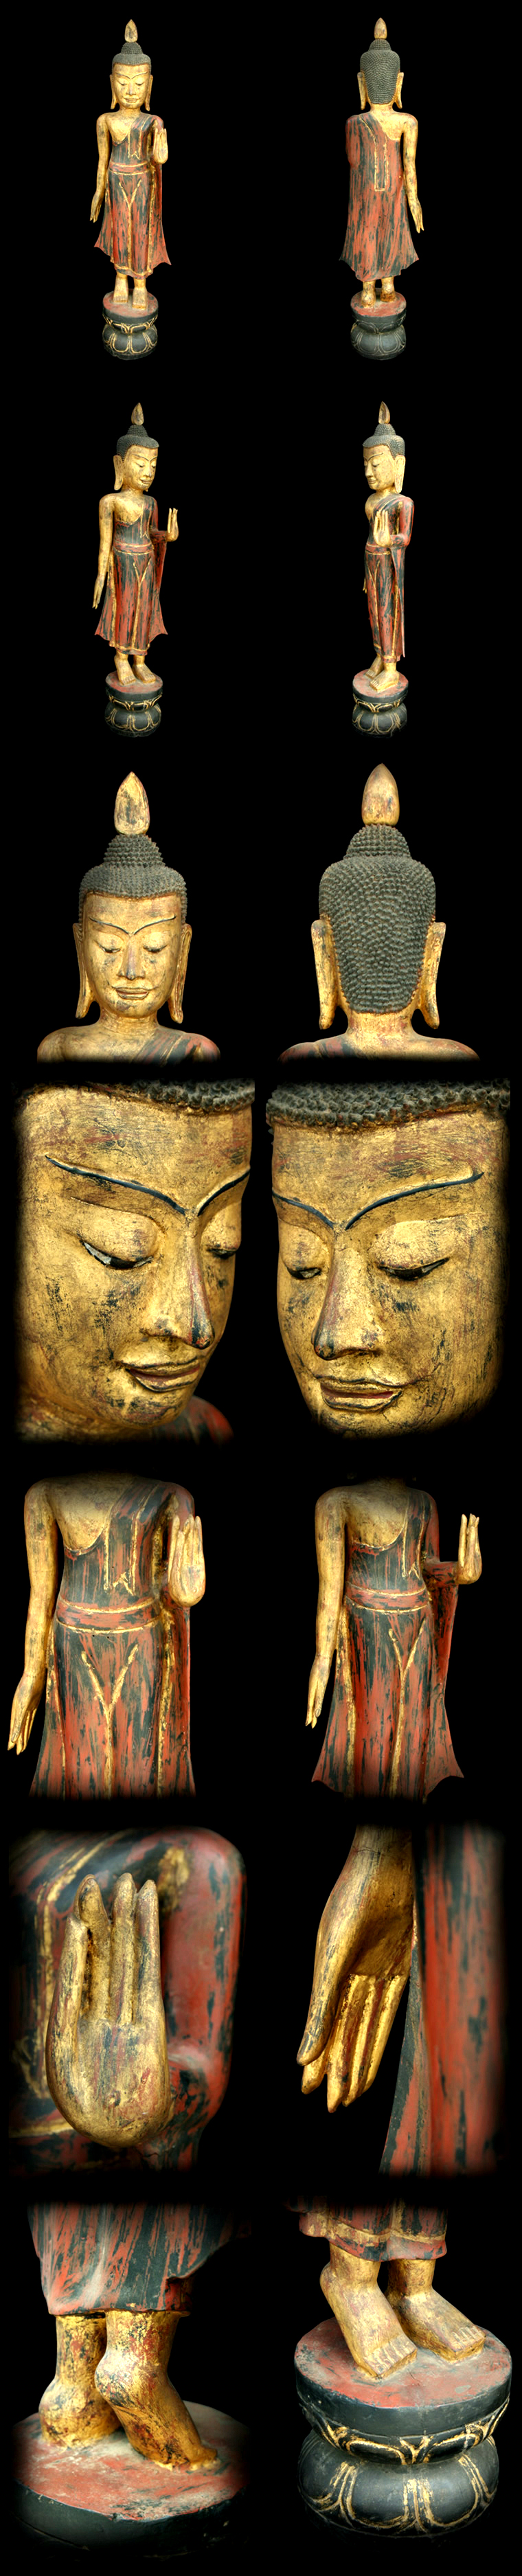 Extremely Rare 18C Wood Walking Laos Buddha #087-2